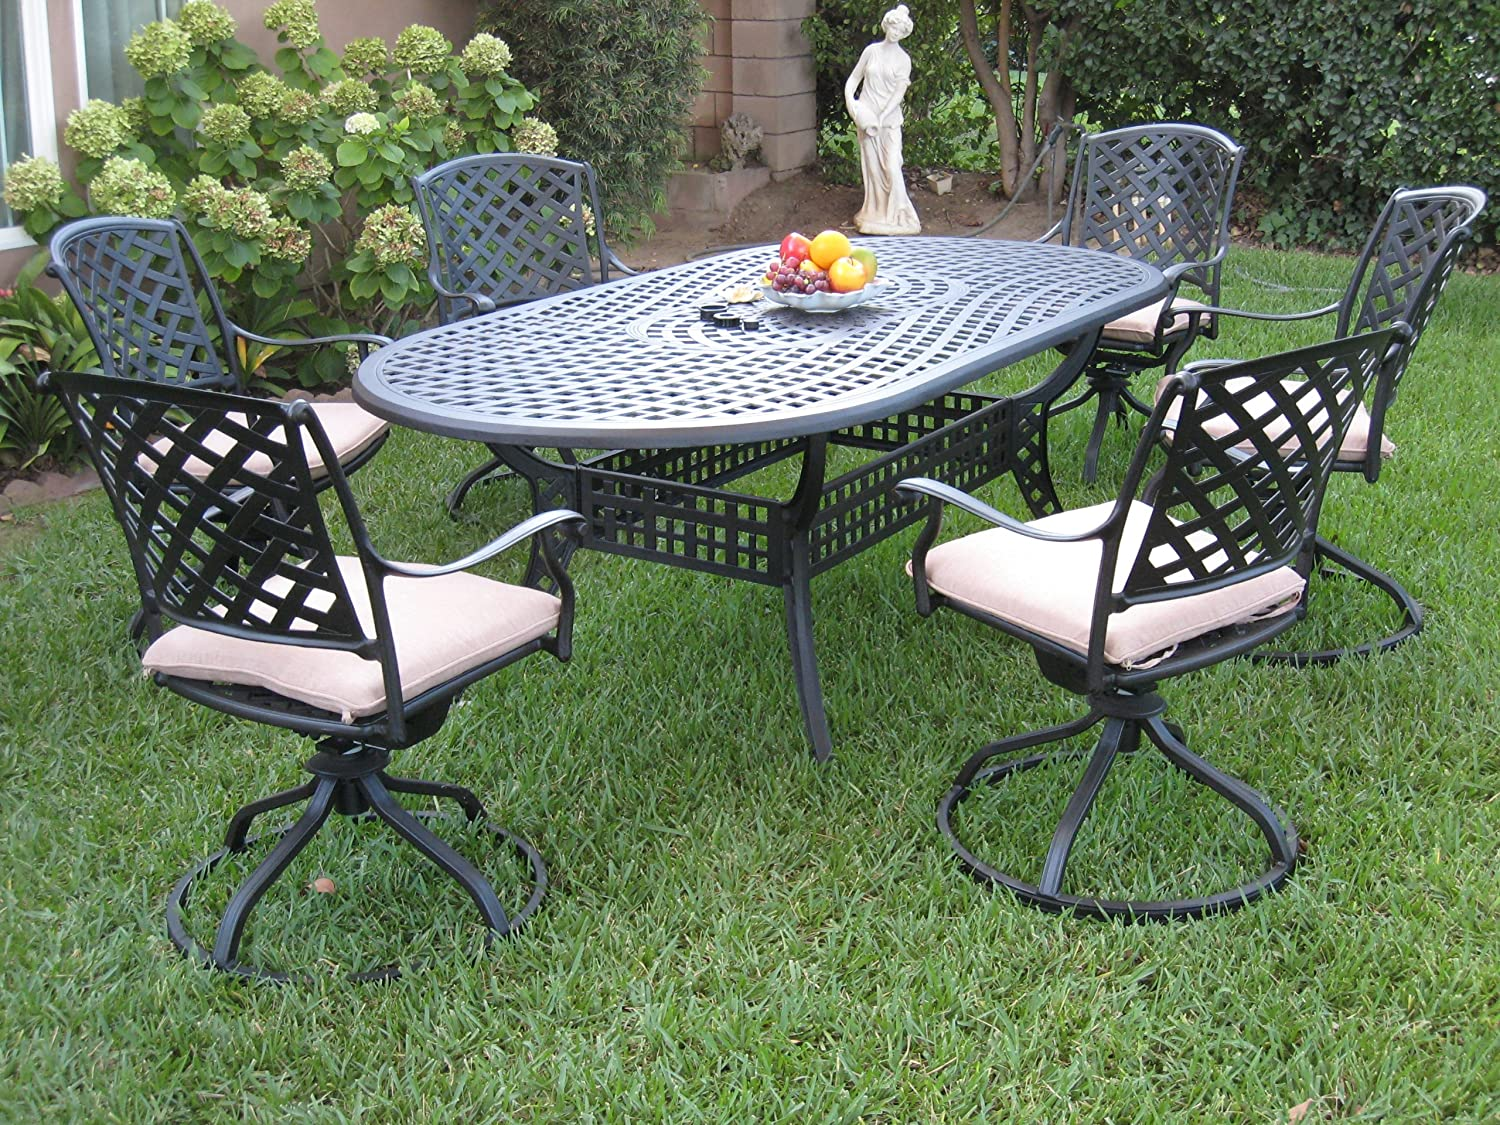 Outdoor Cast Aluminum Patio Furniture 7 Piece Dining Set